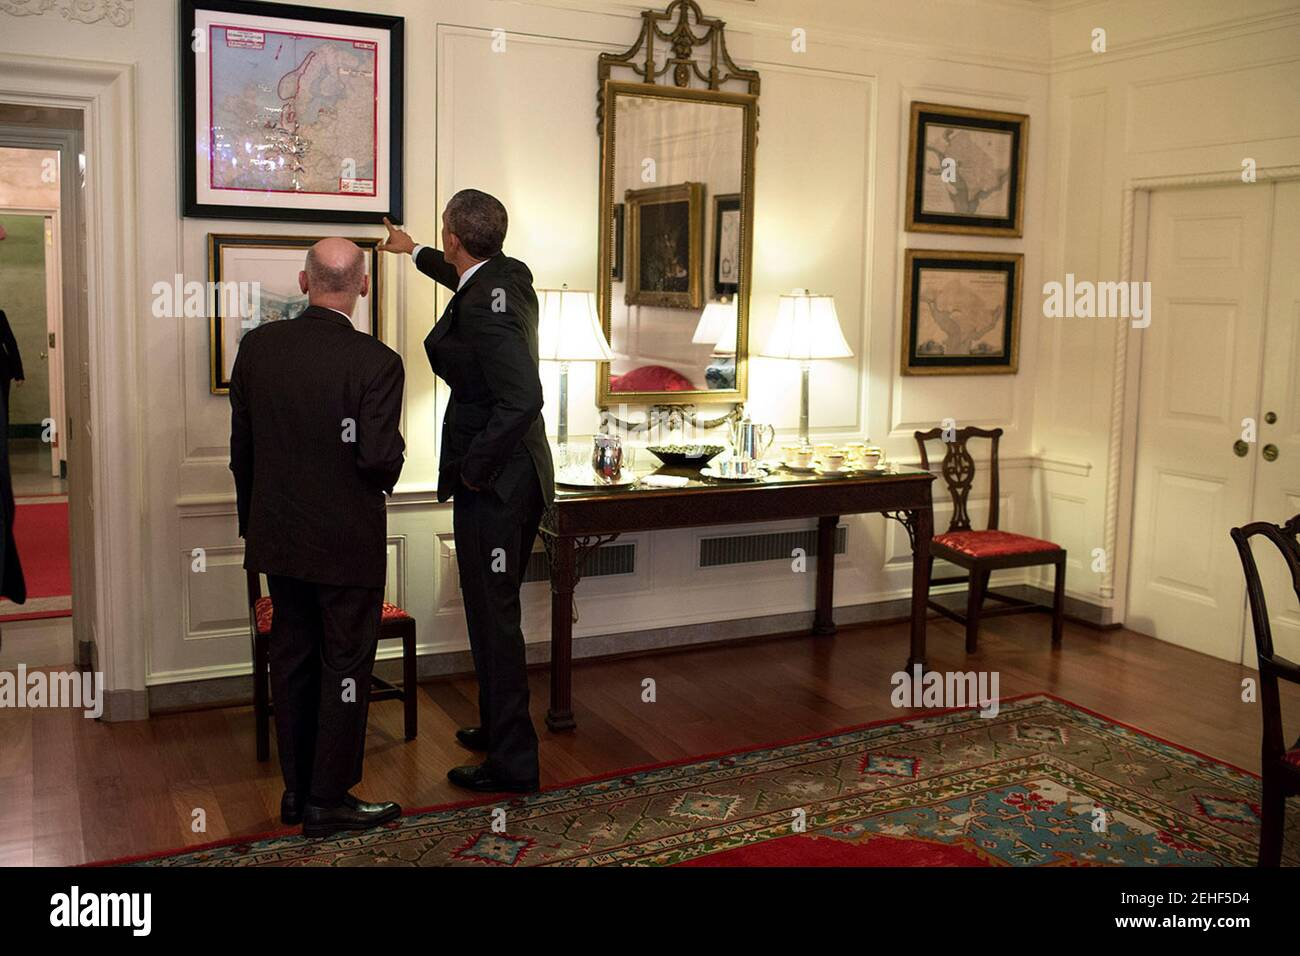 President Barack Obama Talks With President Ashraf Ghani Of Afghanistan In The Map Room Following A Working Lunch In The Old Family Dining Room Of The White House March 24 2015 Stock